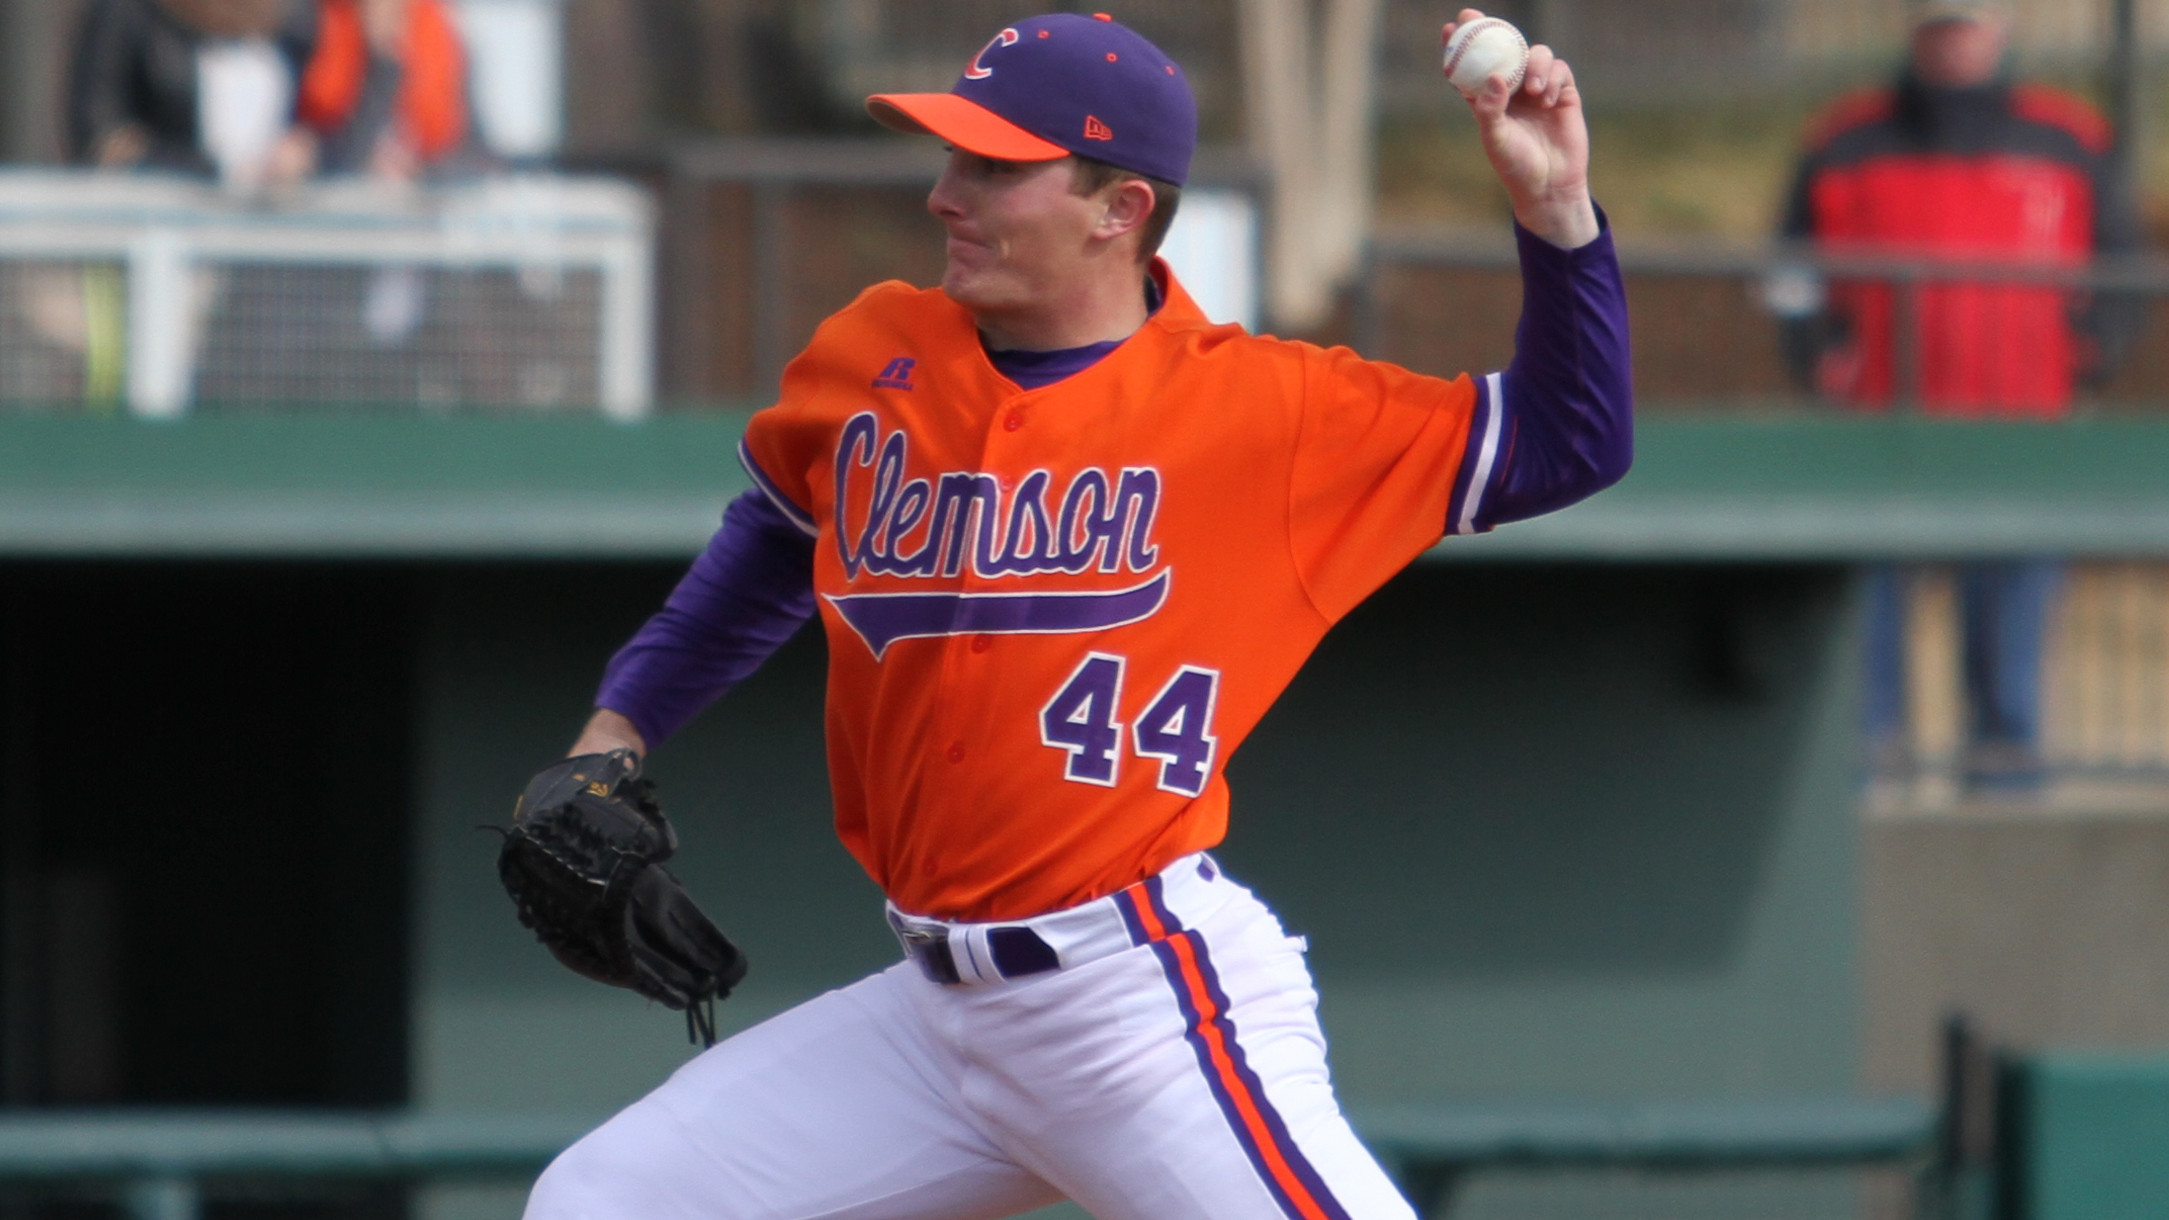 Tiger Baseball to Play Host to Winthrop Tuesday